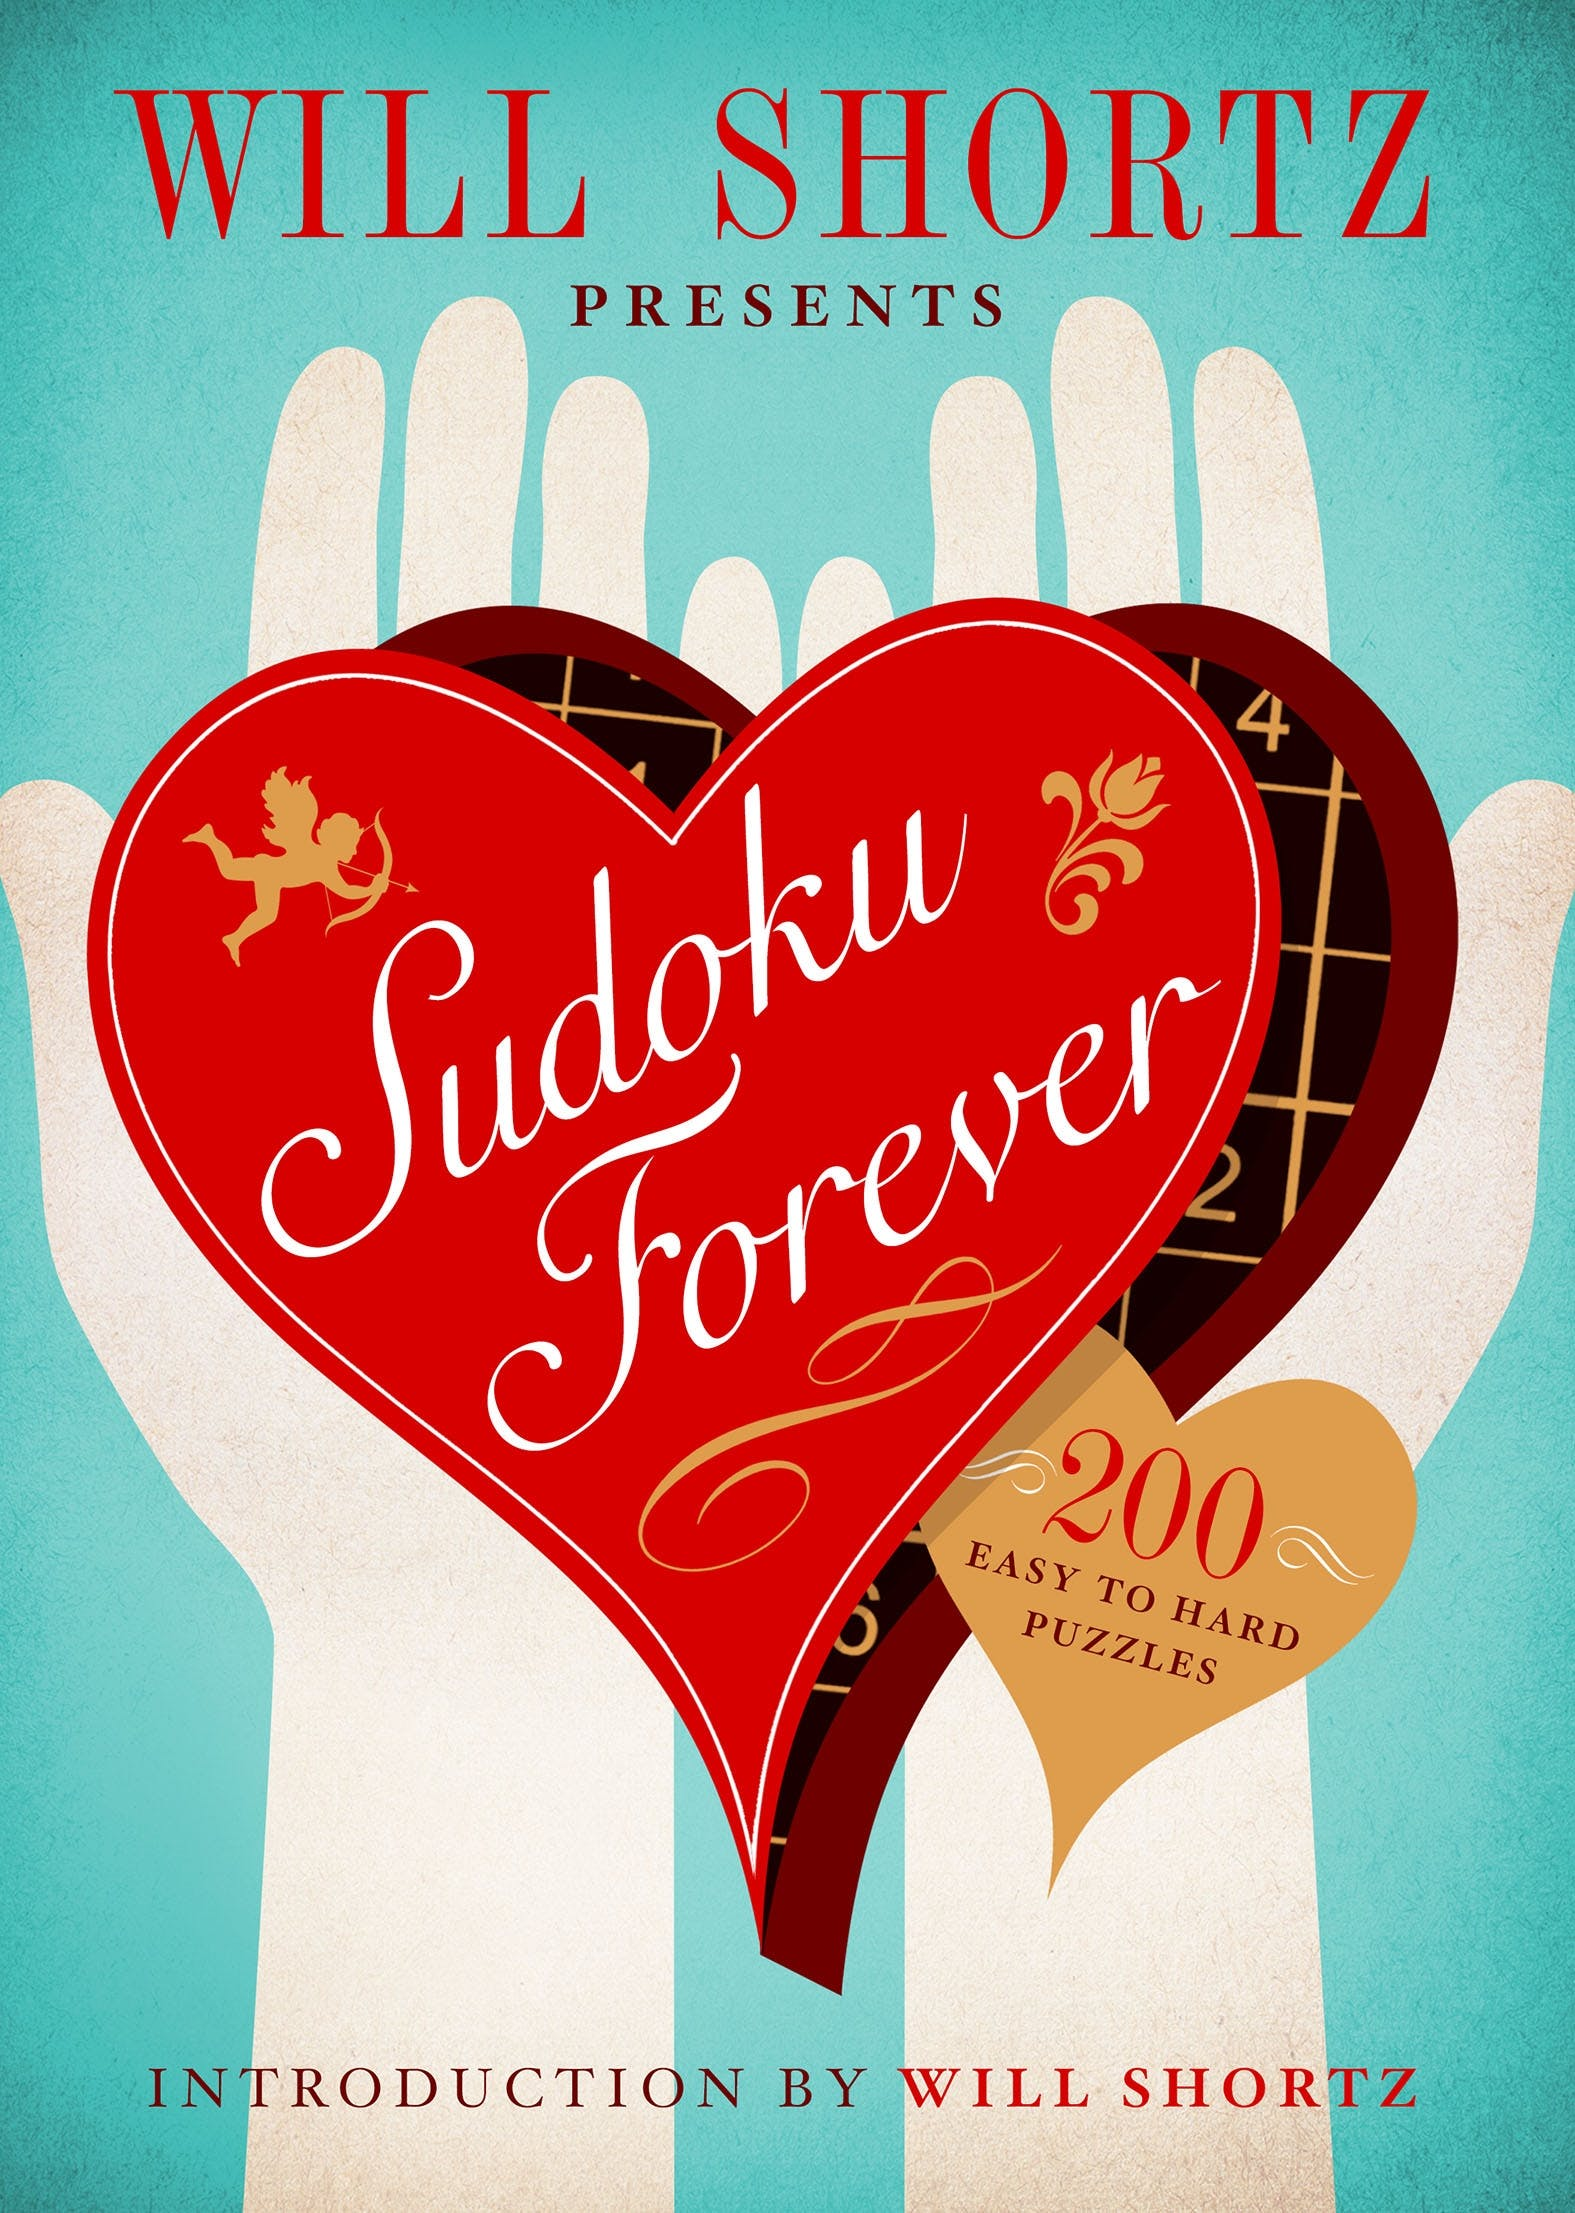 Image of Will Shortz Presents Sudoku Forever: 200 Easy to Hard Puzzles